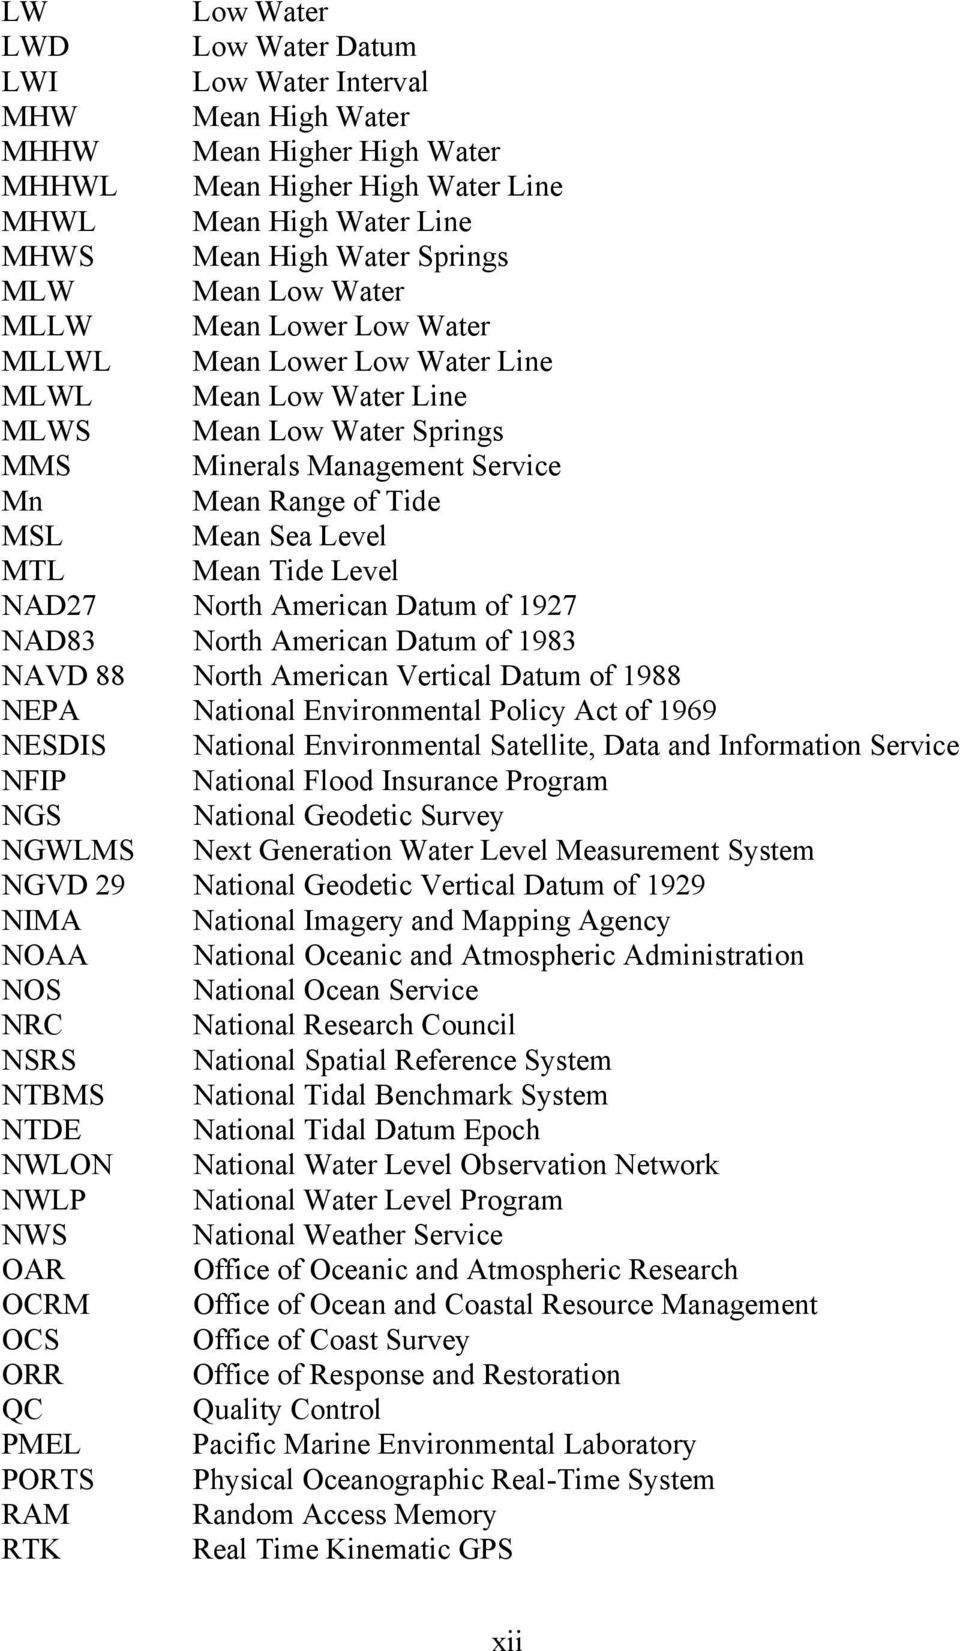 MTL Mean Tide Level NAD27 North American Datum of 1927 NAD83 North American Datum of 1983 NAVD 88 North American Vertical Datum of 1988 NEPA National Environmental Policy Act of 1969 NESDIS National